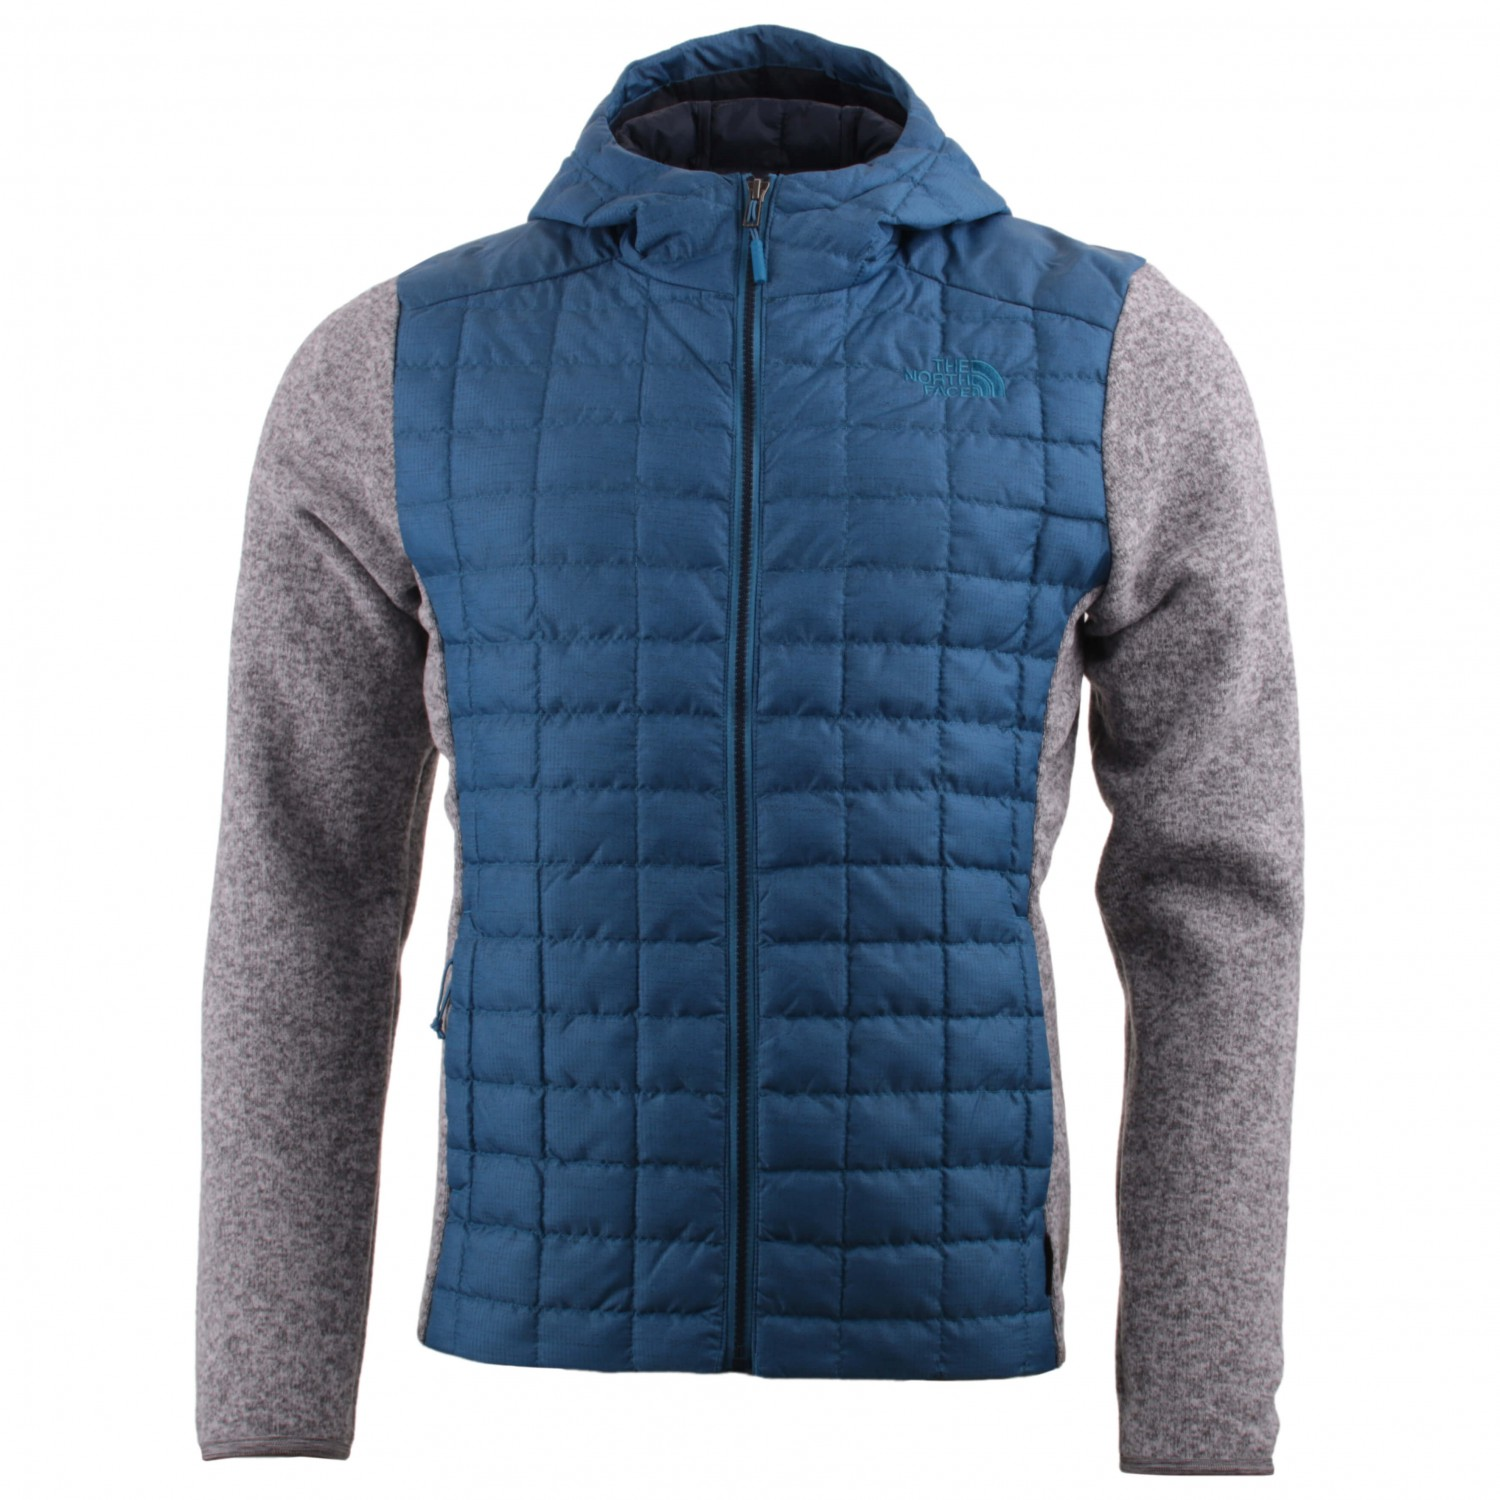 41b6198ccc ... The North Face - Thermoball Gordon Lyons Hoodie - Veste synthétique ...